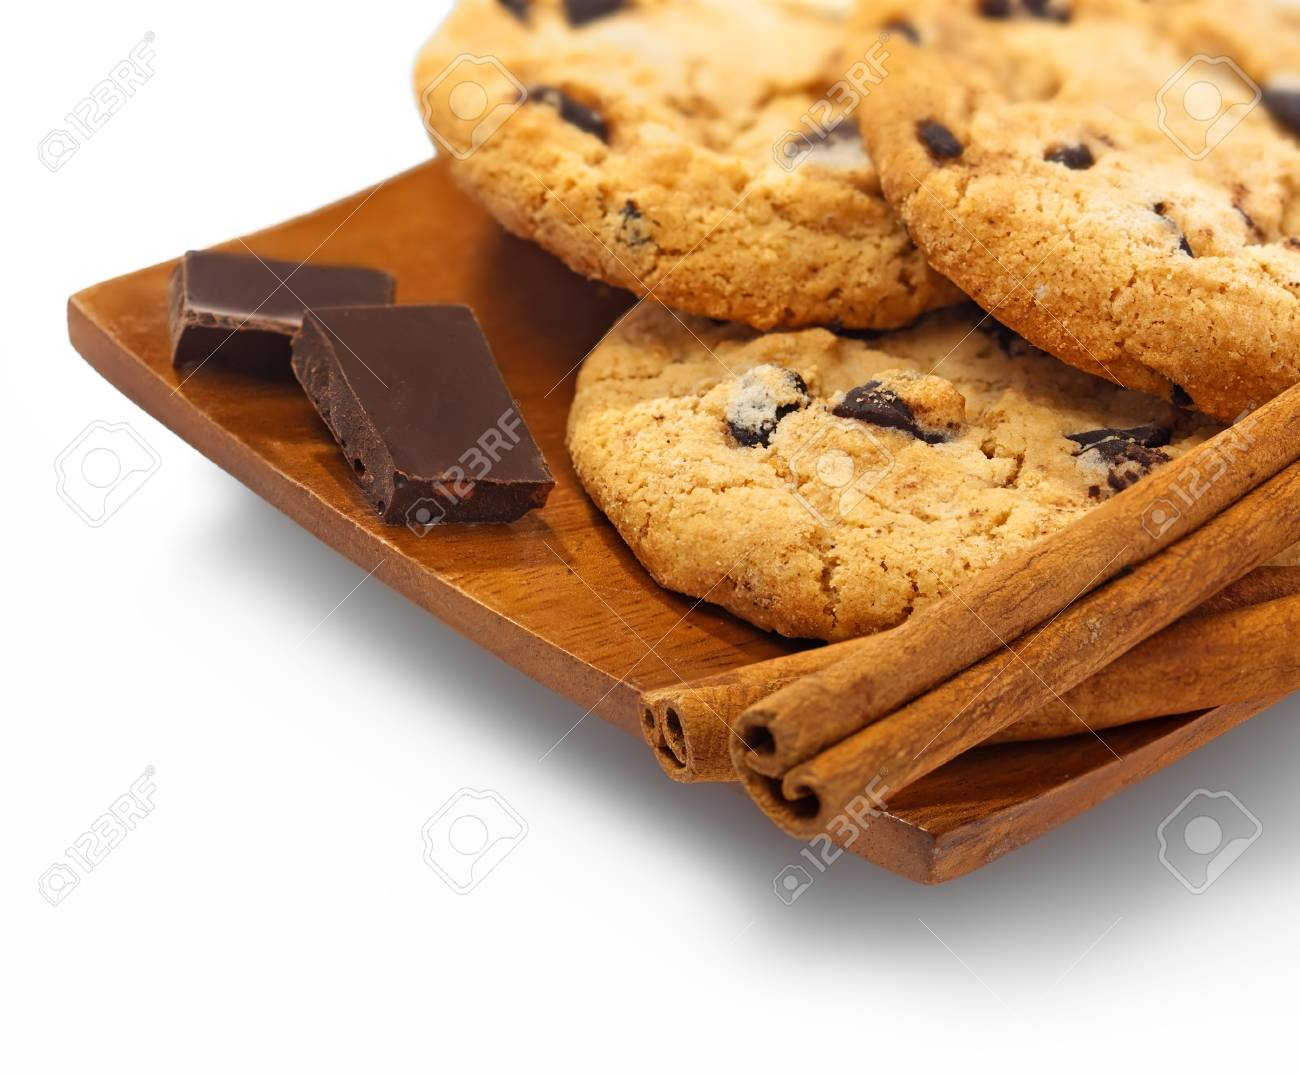 Cookies Chocolate And Cinnamon Sticks On The Wooden Plate